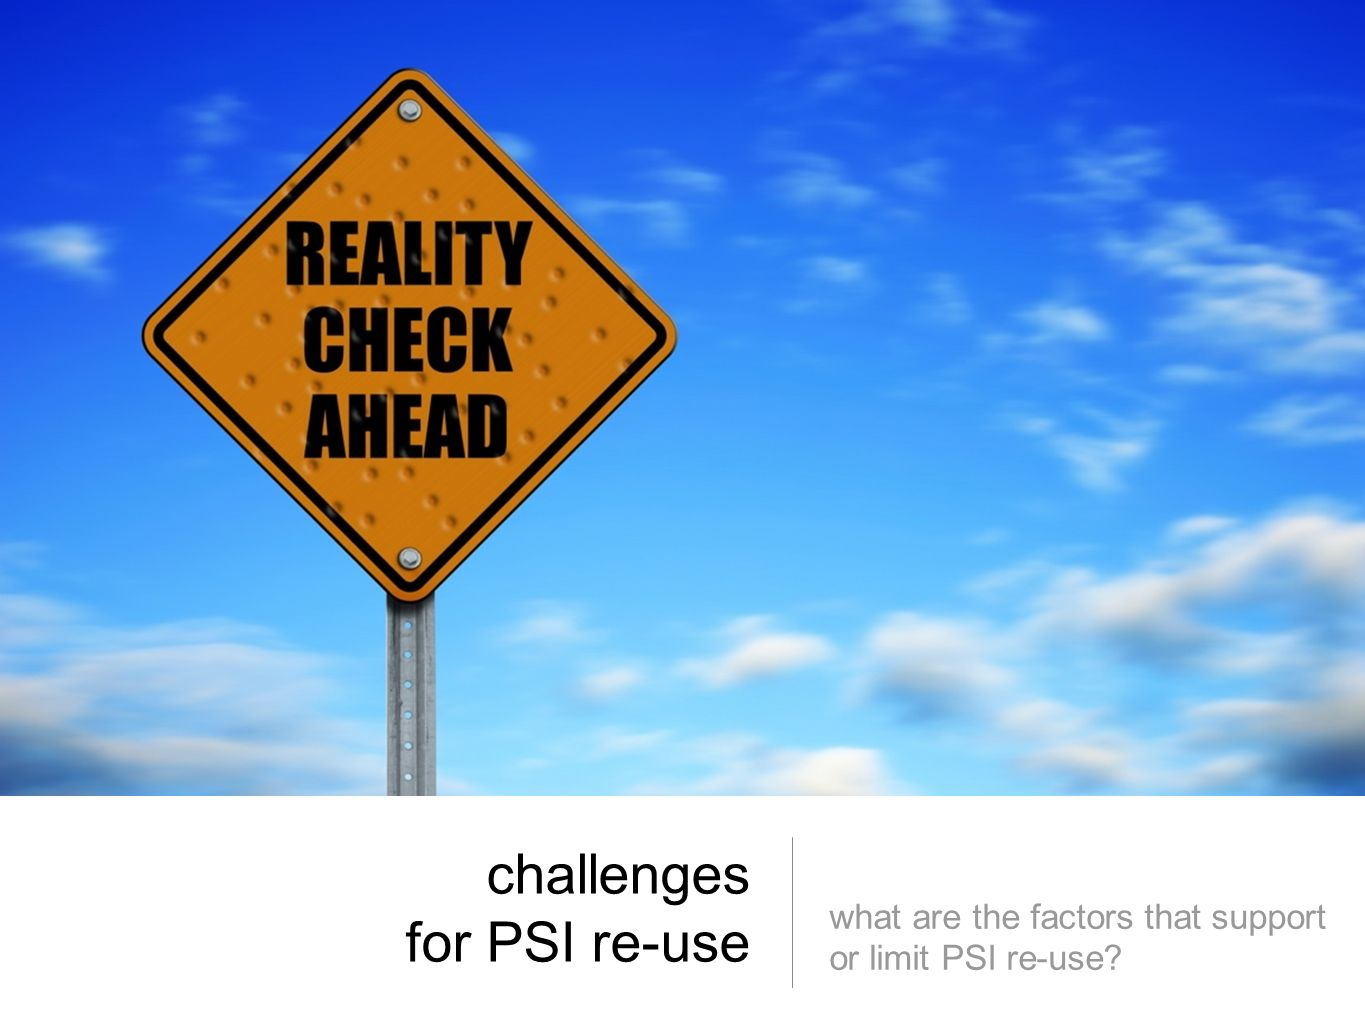 challenges for PSI re-use what are the factors that support or limit PSI re-use